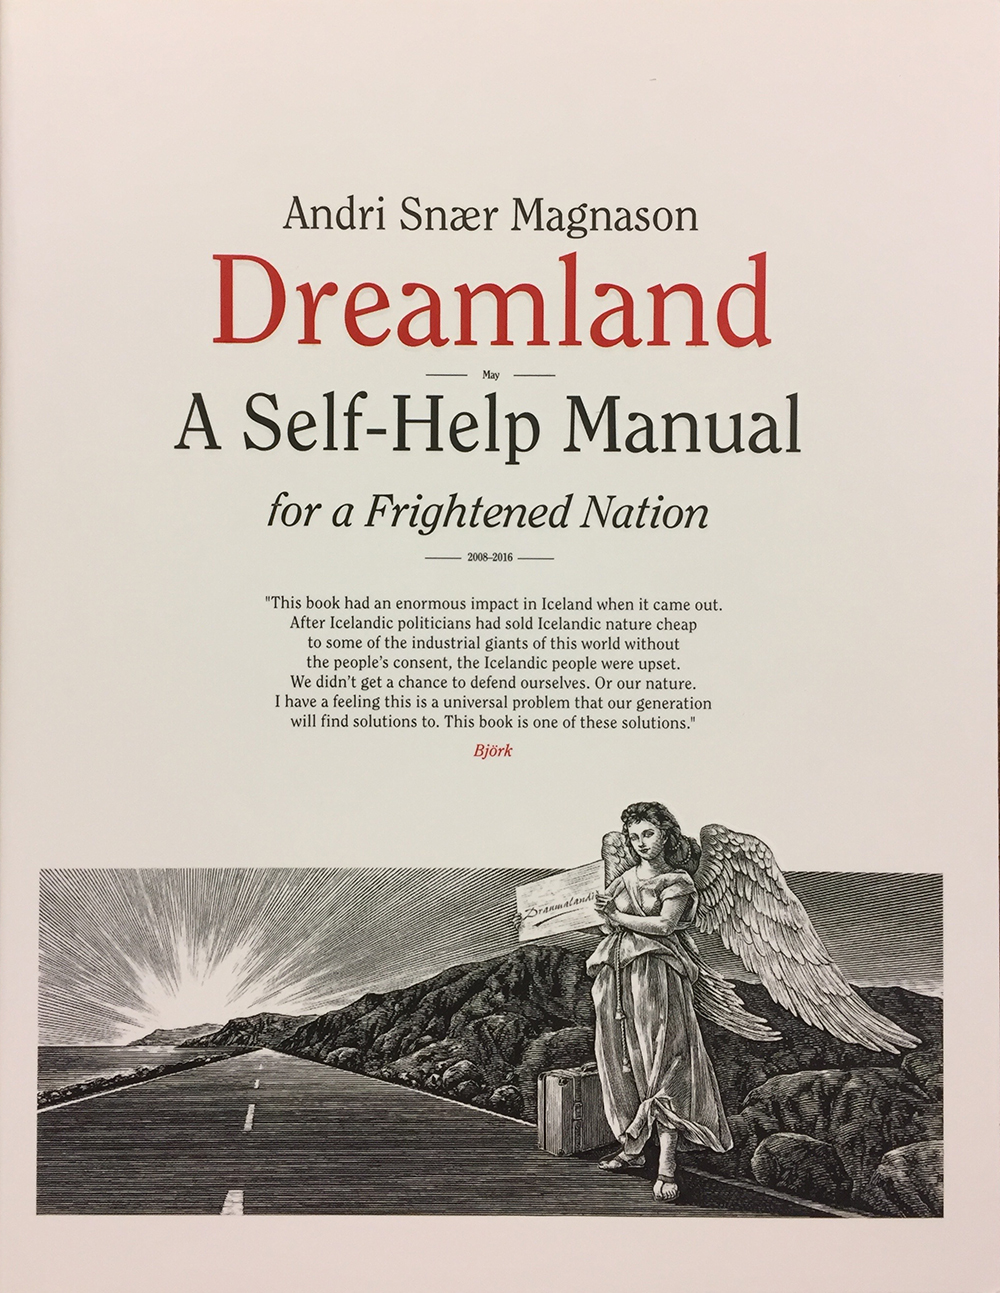 Dreamland – A Self-Help Manual for a Frightened Nation